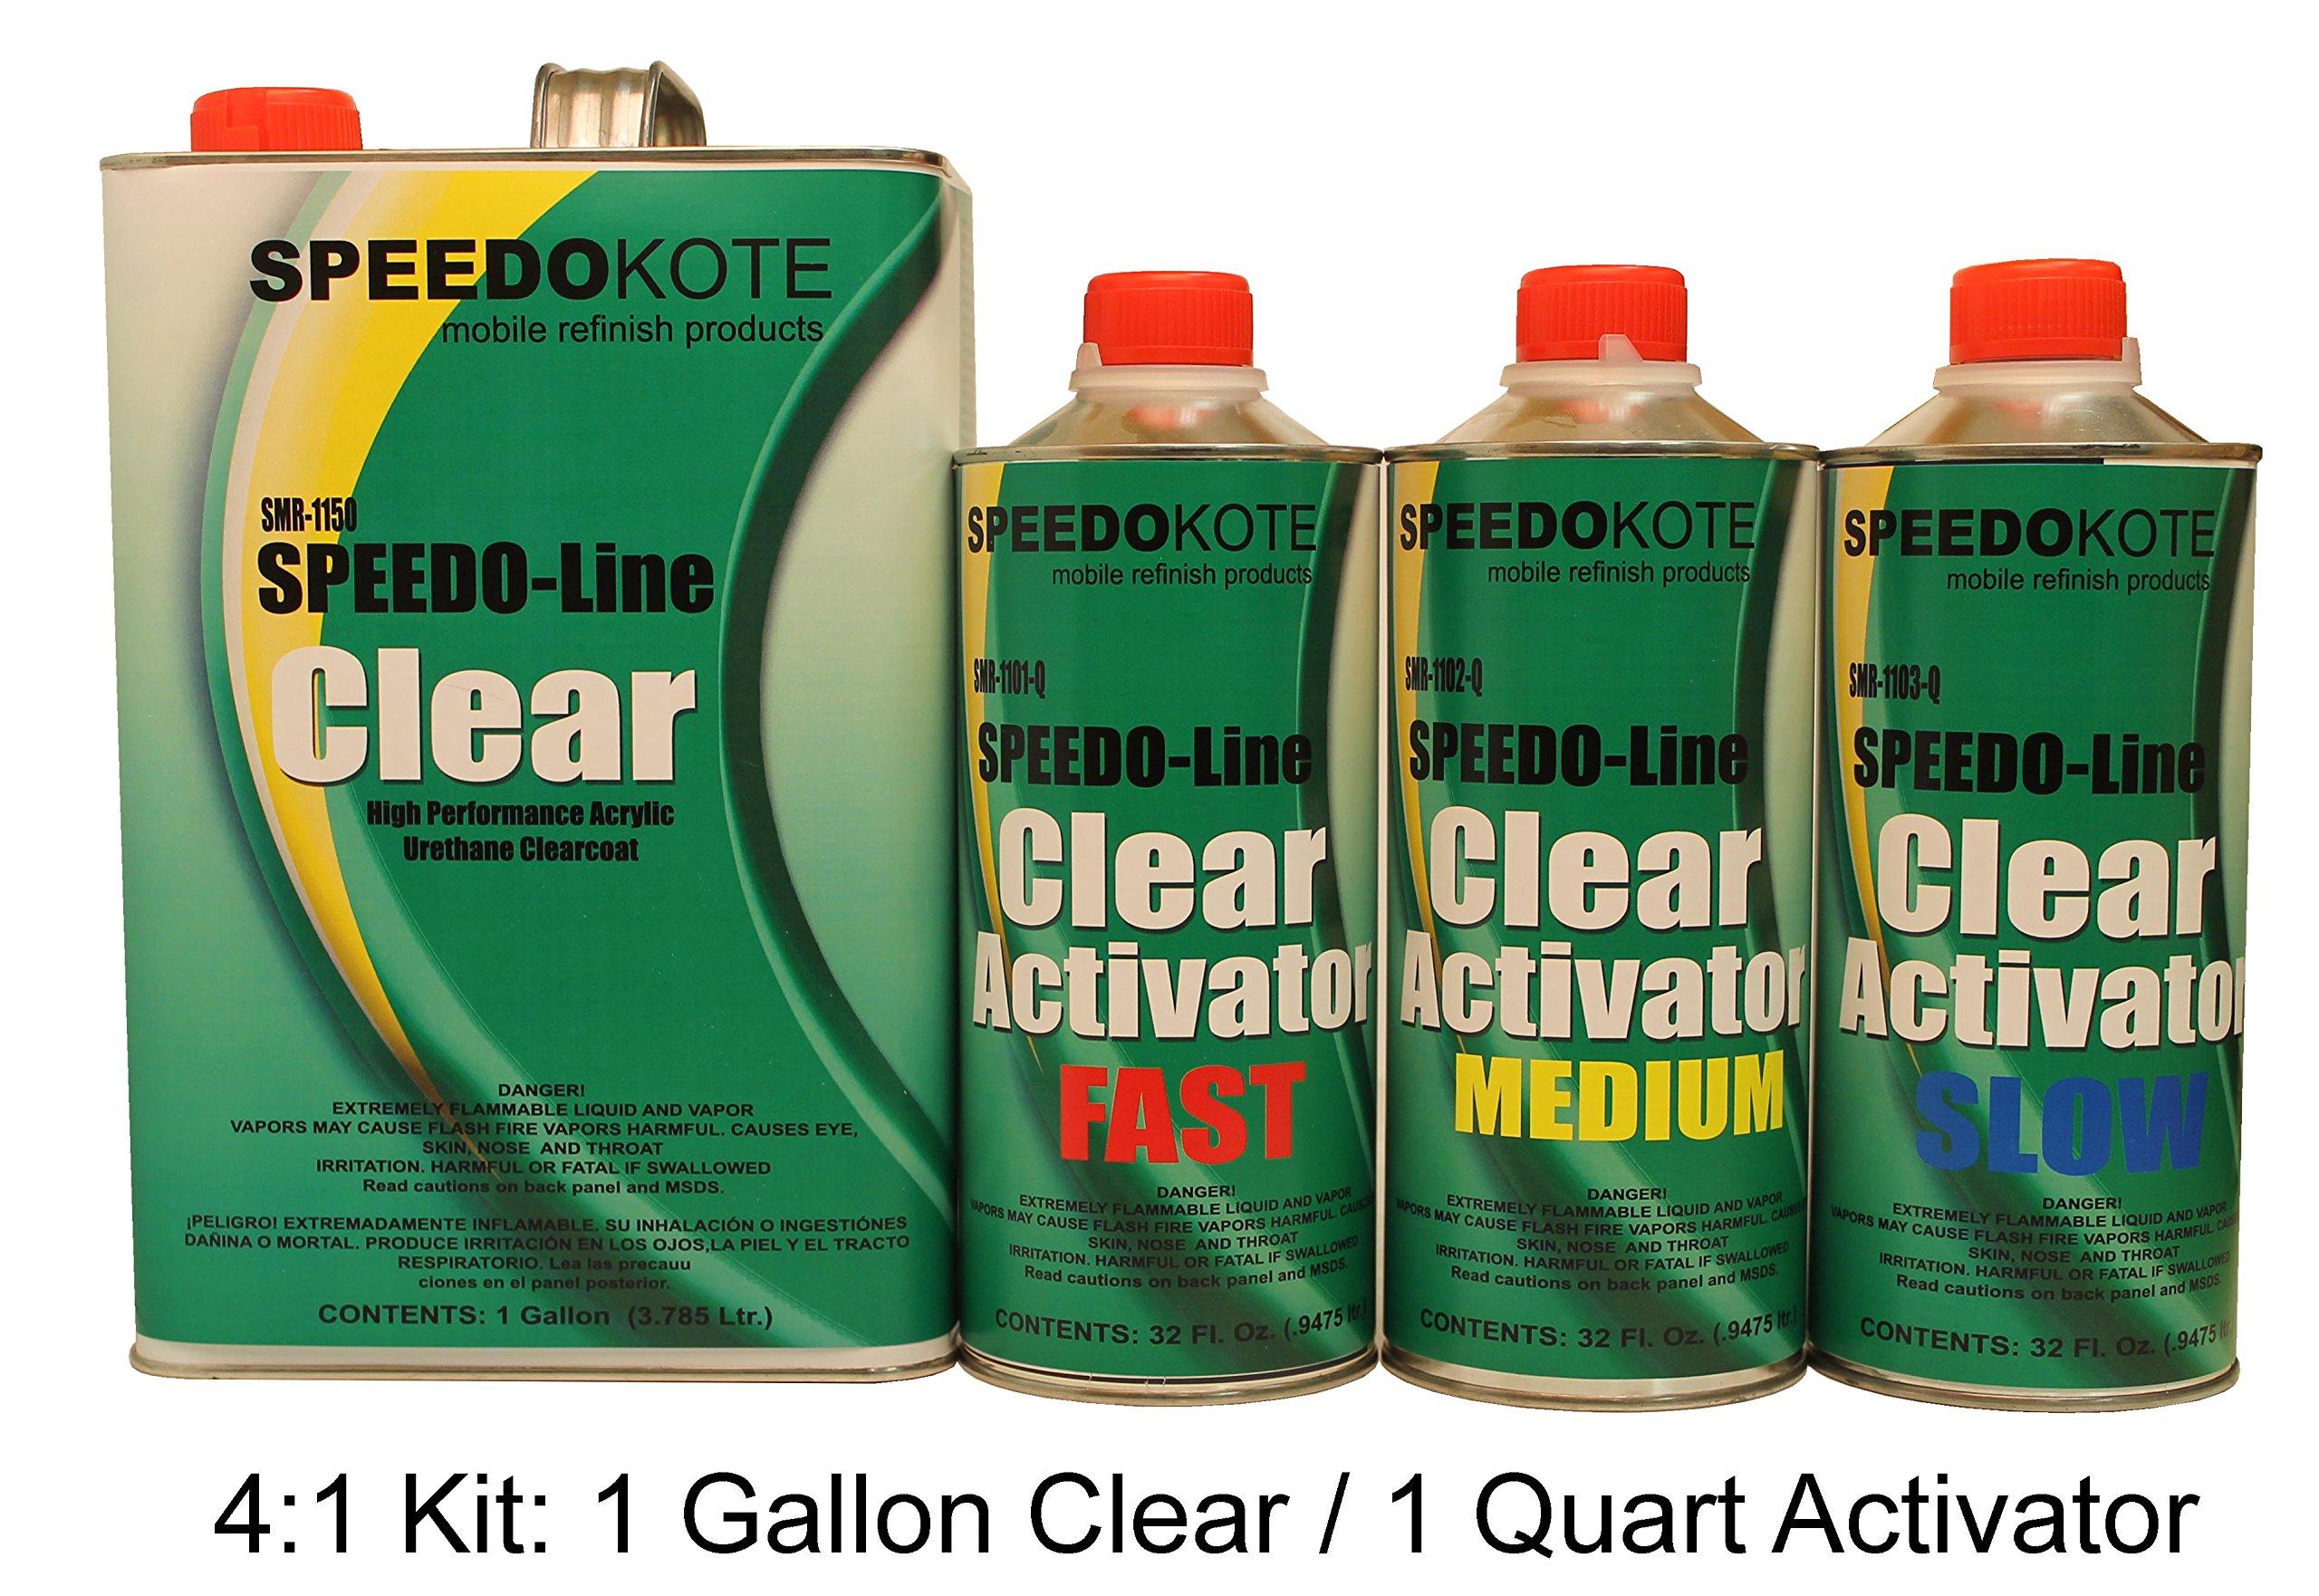 Clear Coat 2K Acrylic Urethane, SMR-1150/1103-Q 4:1 Gallon Clearcoat Slow Kit by Speedokote